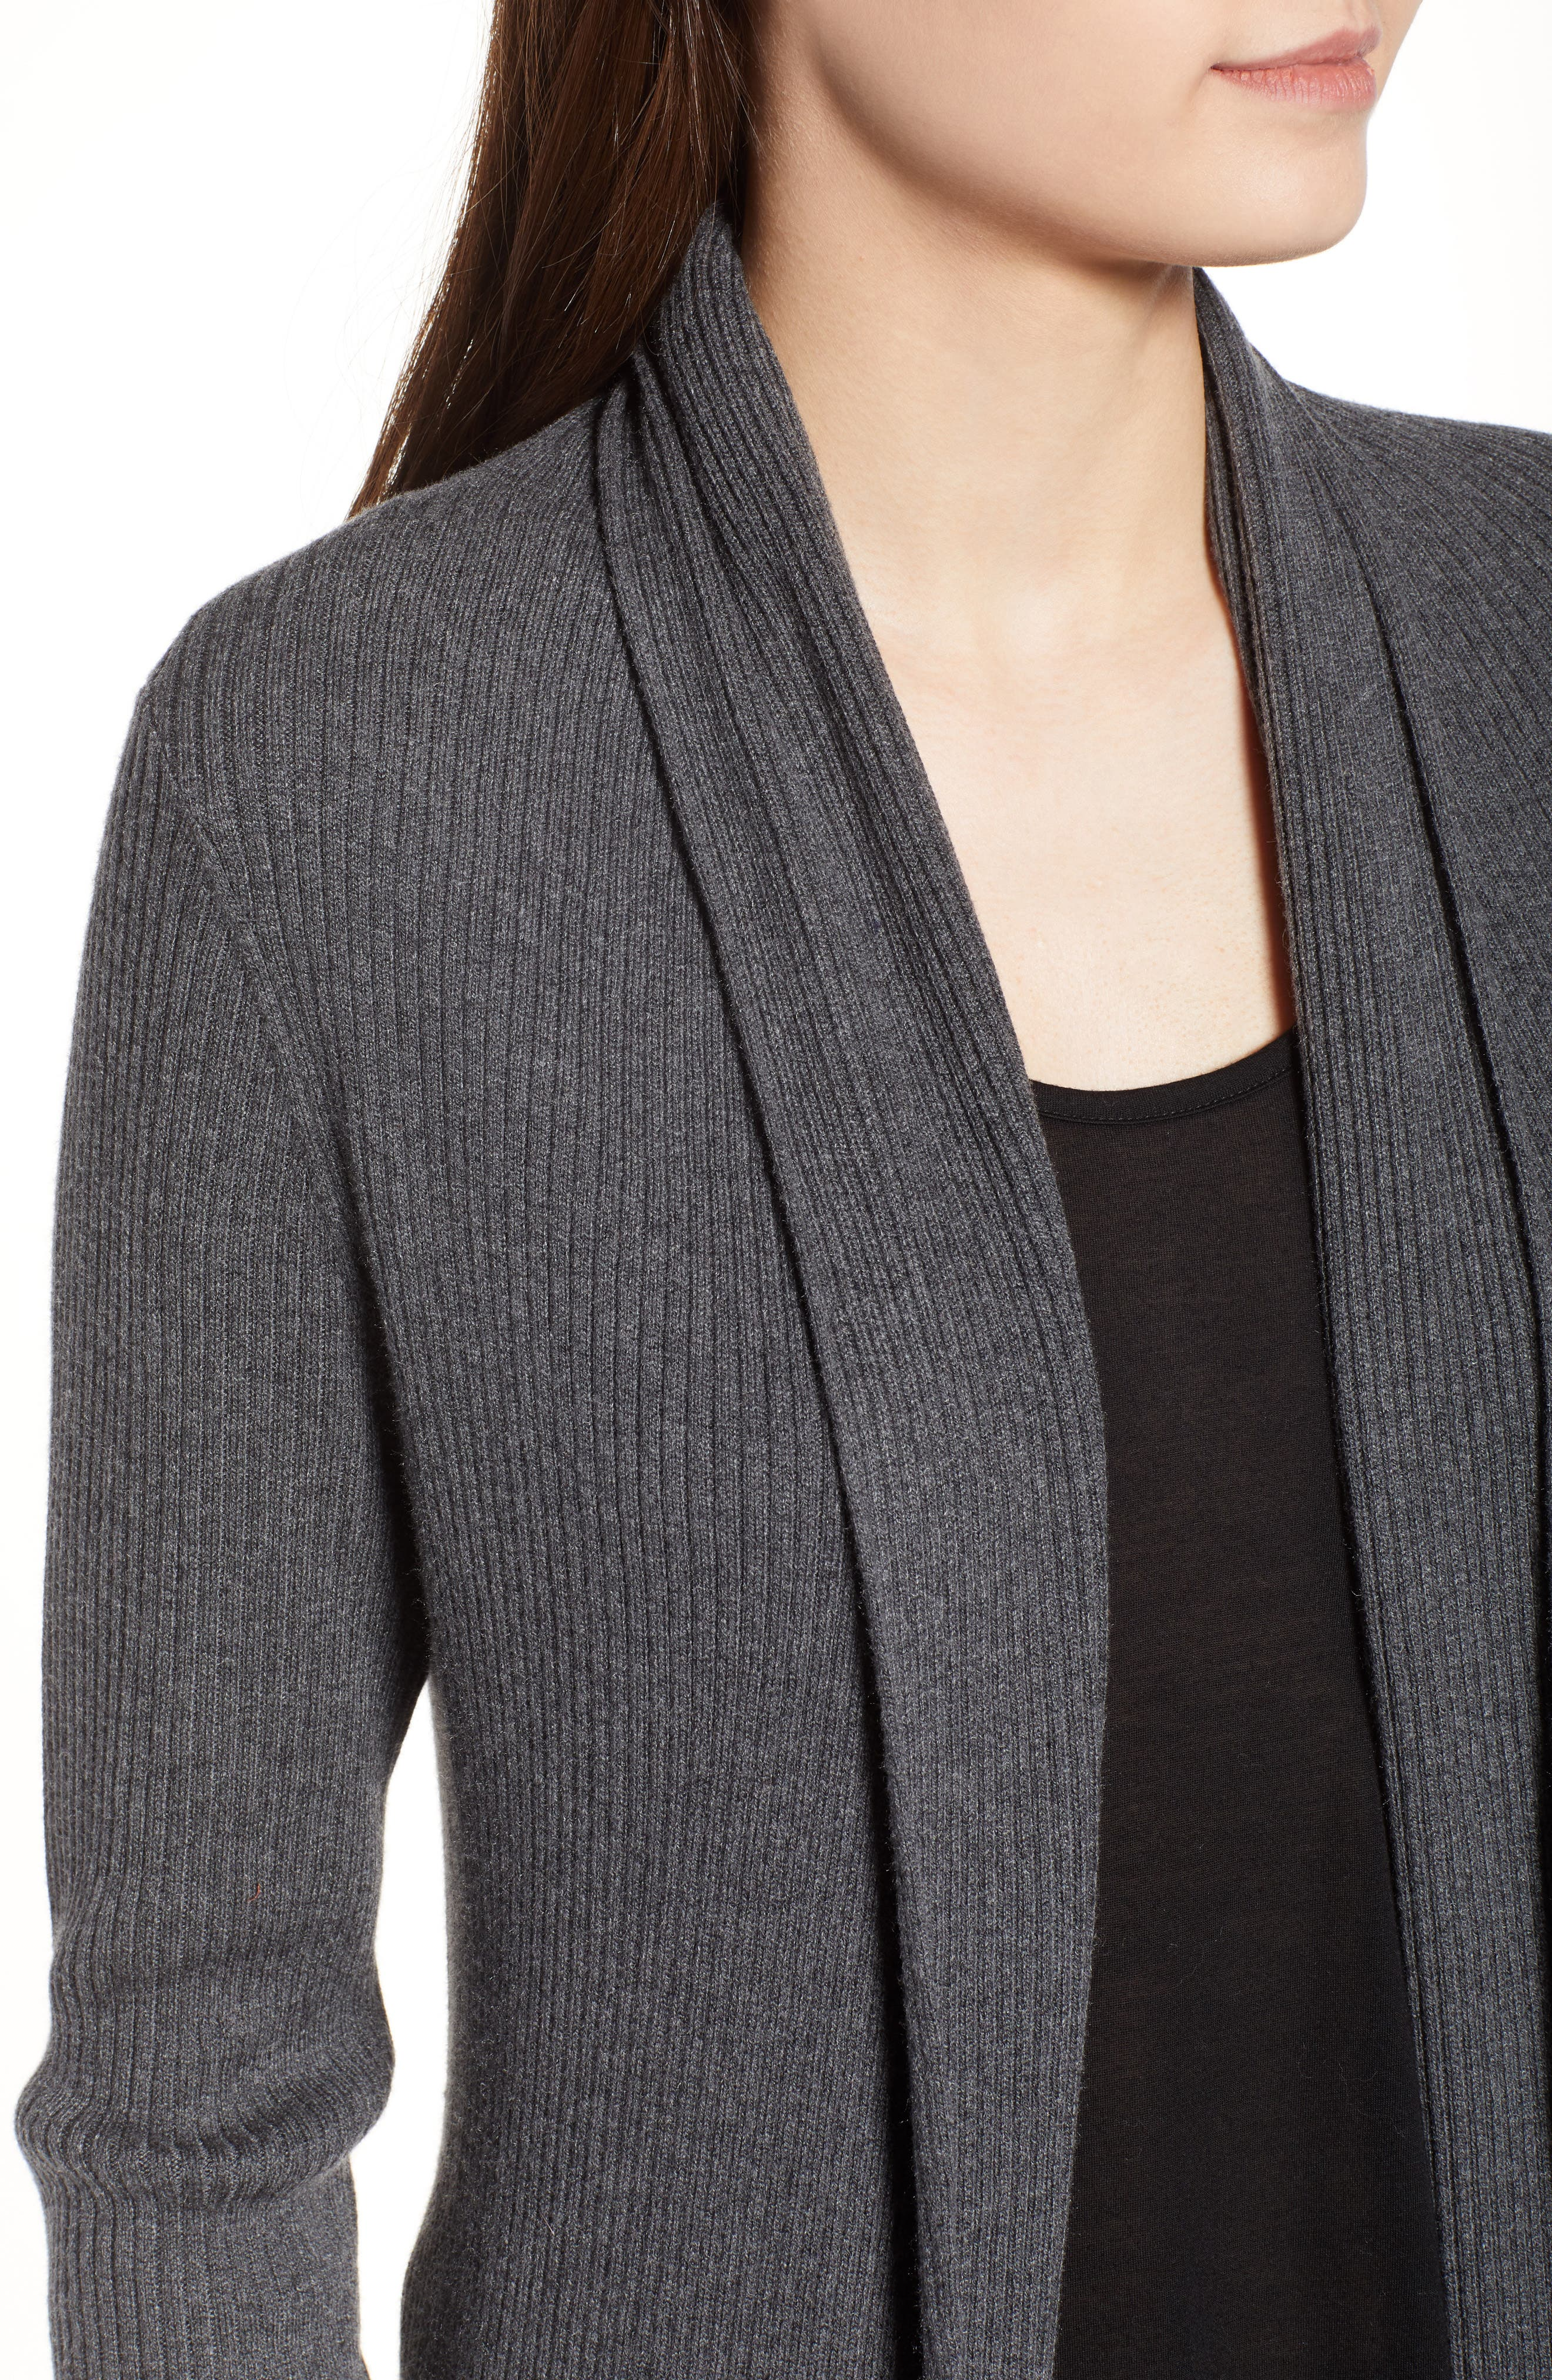 Ribbed Shawl Cocoon Sweater,                             Alternate thumbnail 4, color,                             GREY MEDIUM CHARCOAL HEATHER